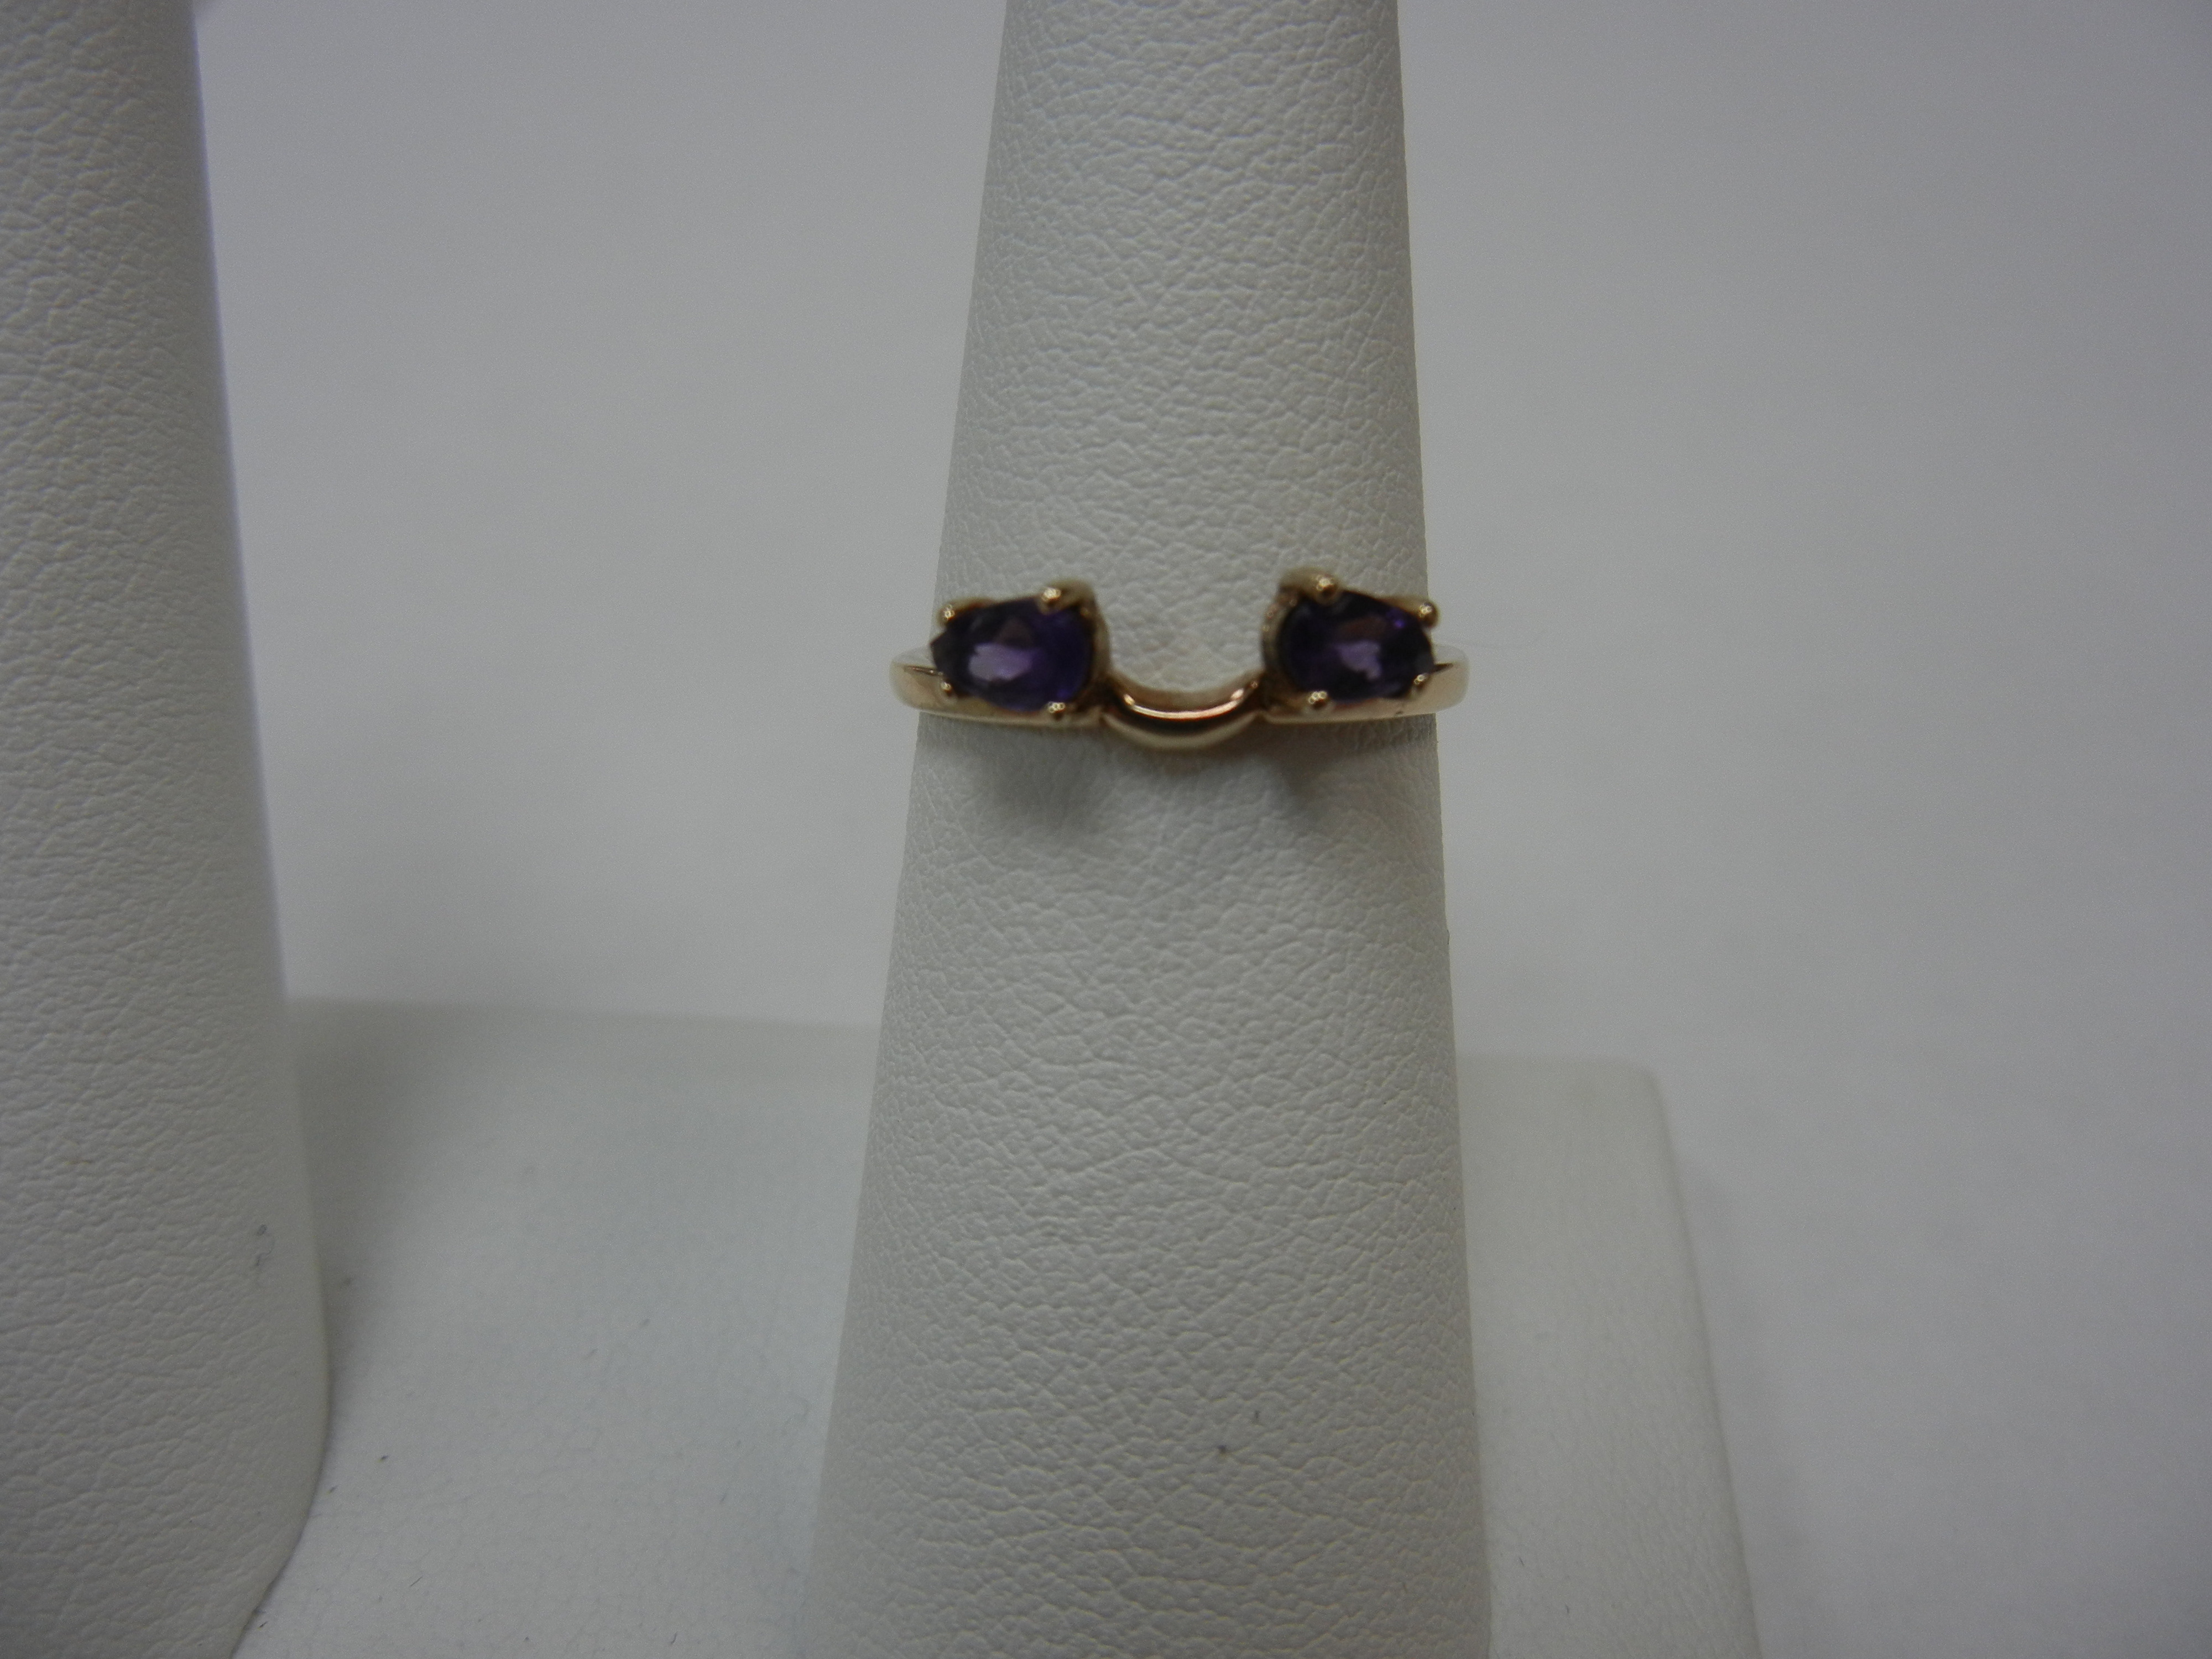 Size 6 WRAP RING WITH PEAR SHAPED PURPLE STONE ON EACH SIDE